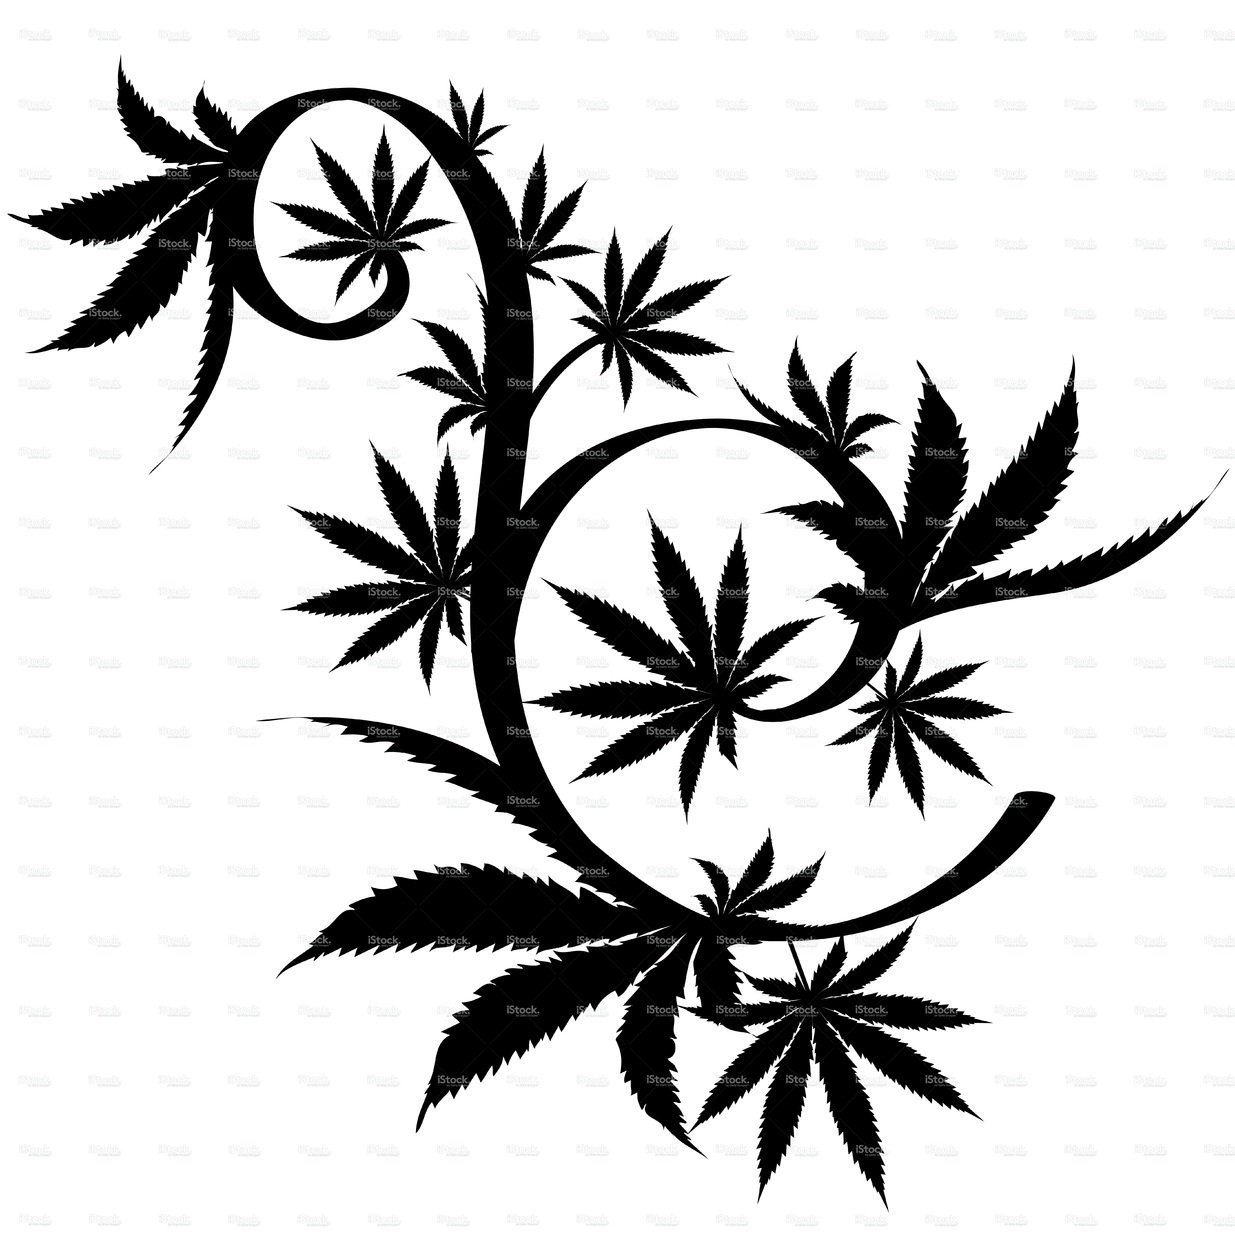 1235x1235 Black And White Vector Cannabis Leaf Composition Background